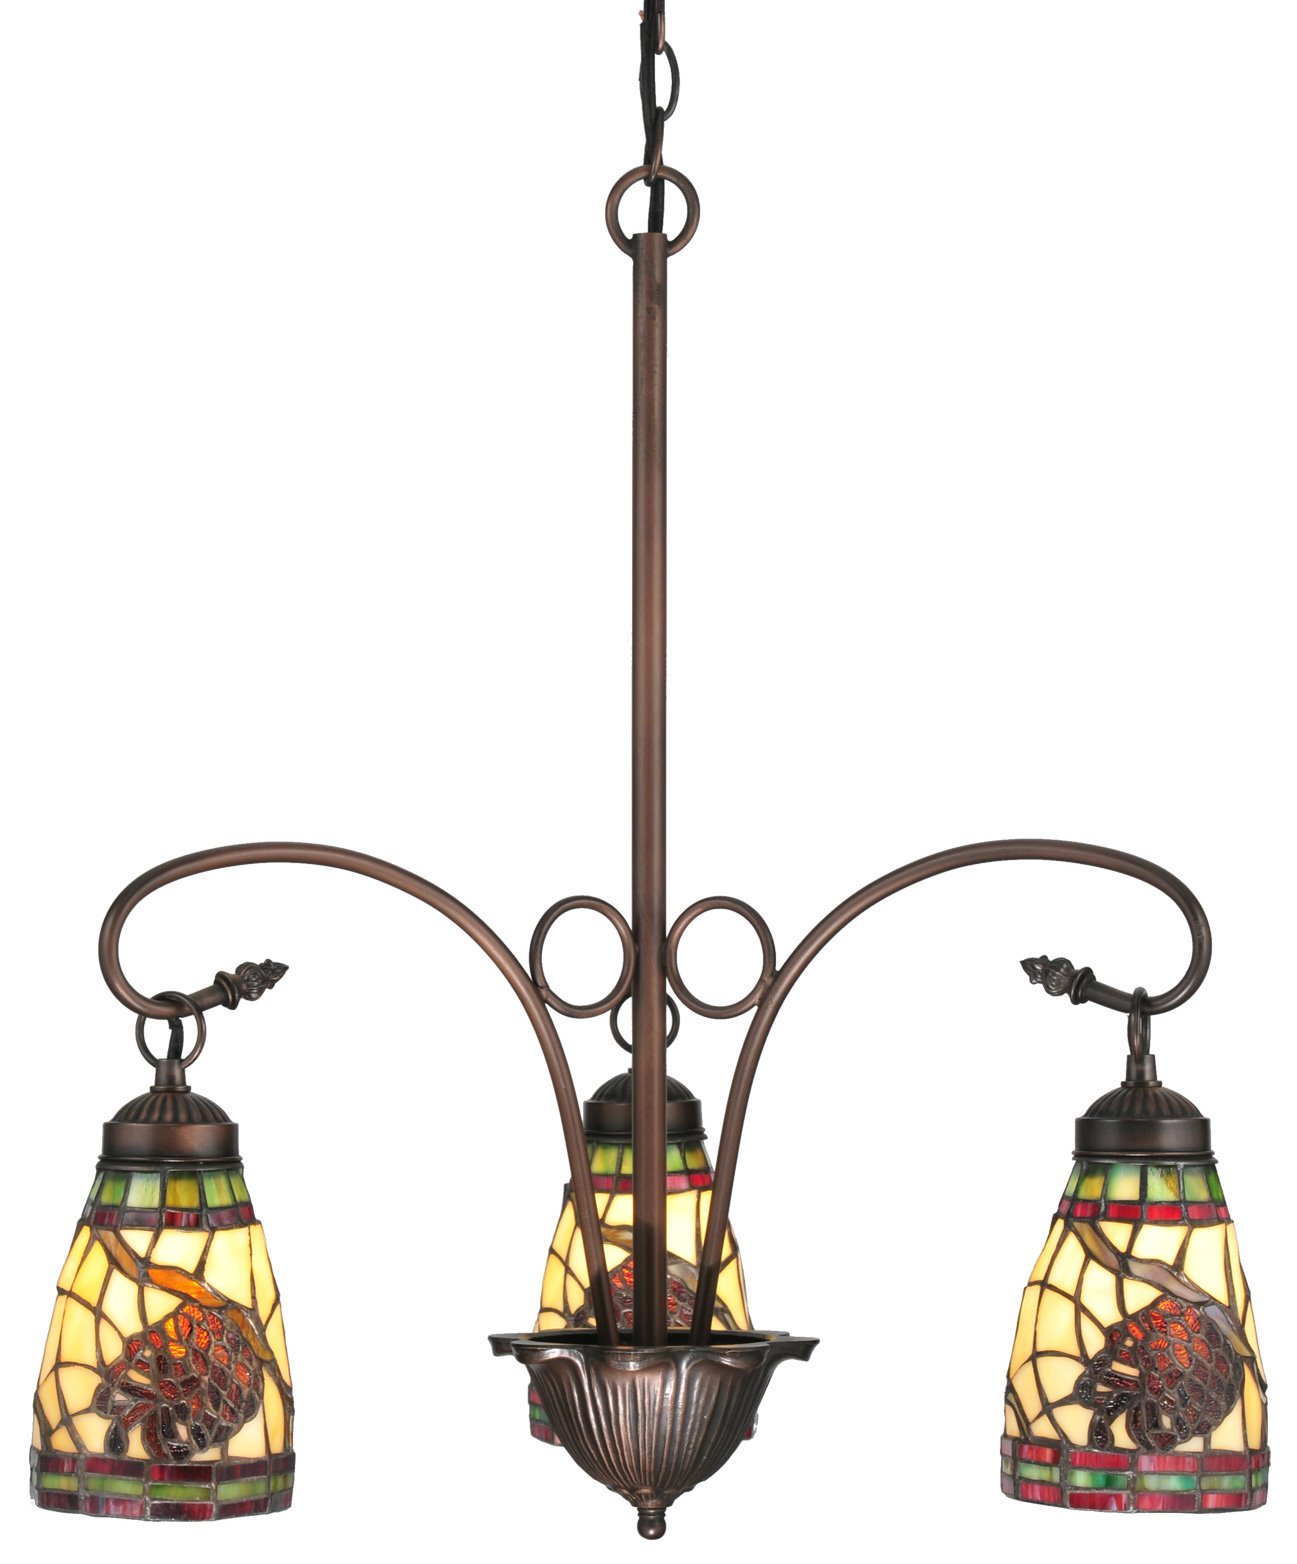 Meyda tiffany 106292 pinecone dome 3 light tiffany chandelier md 106292 zoom aloadofball Image collections